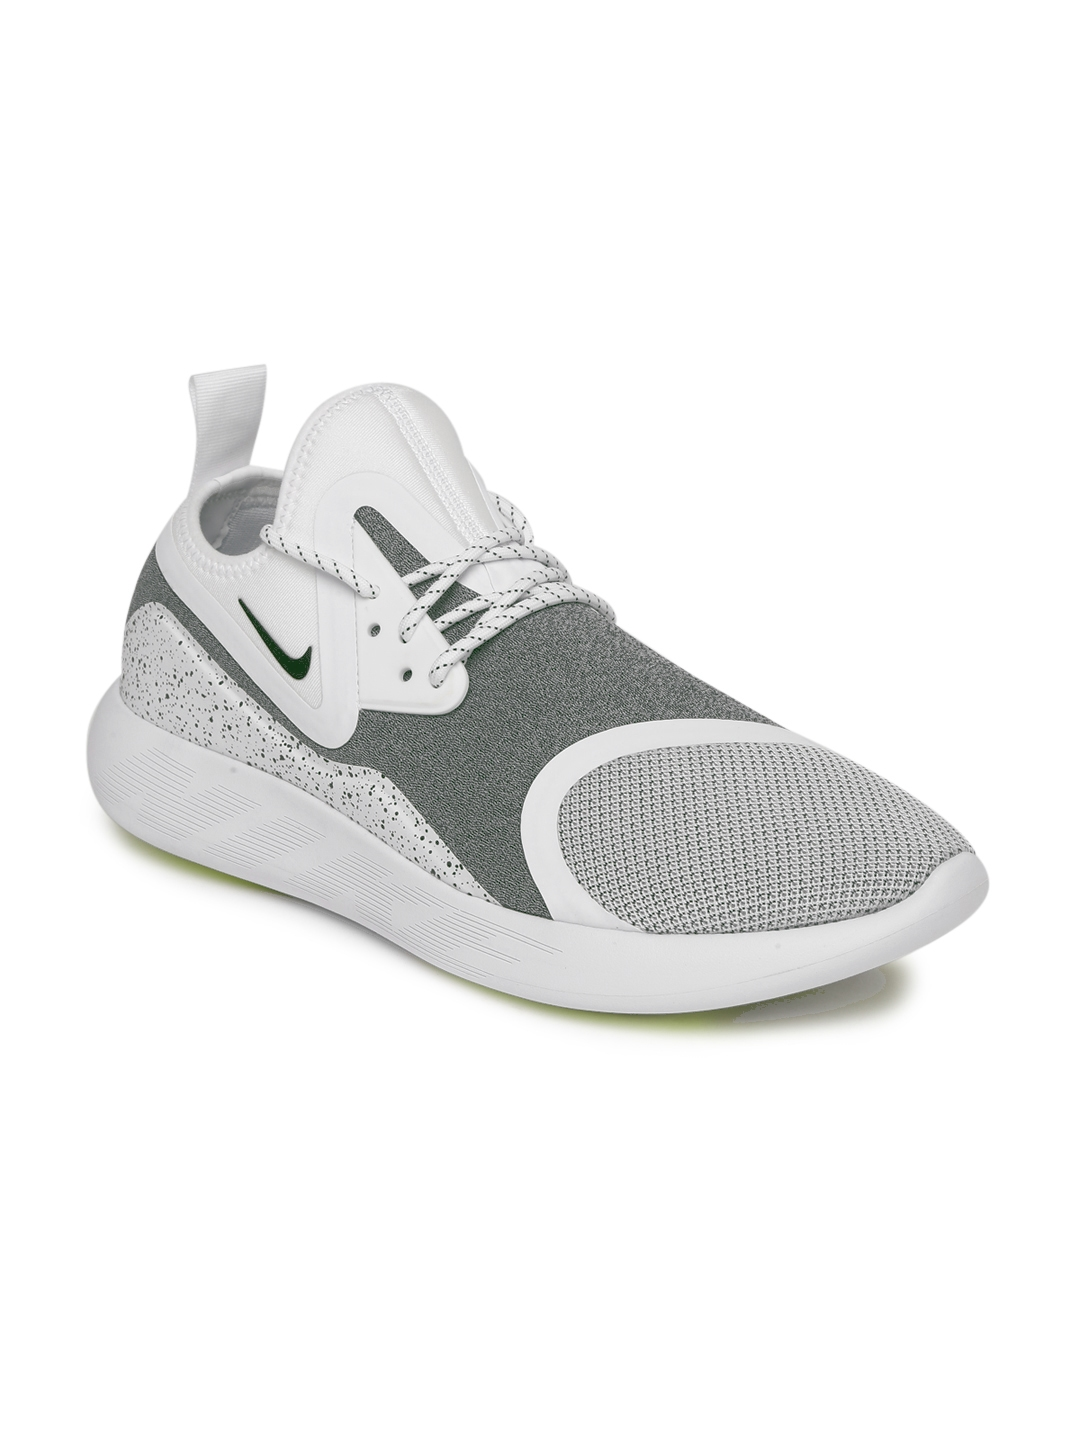 1b09d7af5d46 Nike Men White   Grey Printed Canvas LUNARCHARGE ESSENTIAL Mid-Top Sneakers